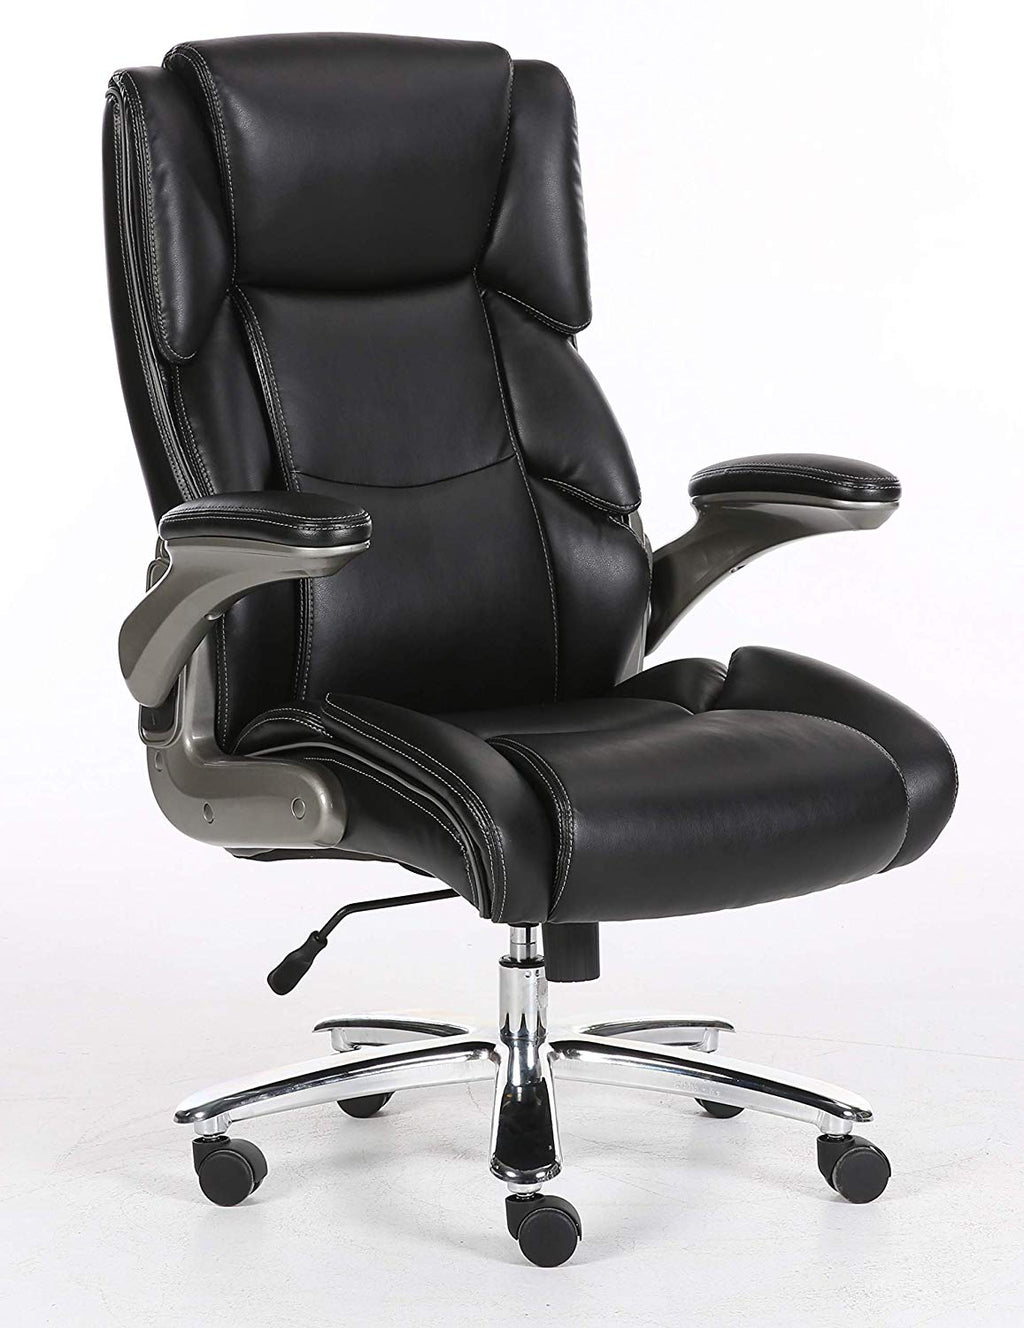 Big And Tall Black Bonded Leather Executive Office Chair With Flip Arms And Extra Thick Padding - US Office Elements